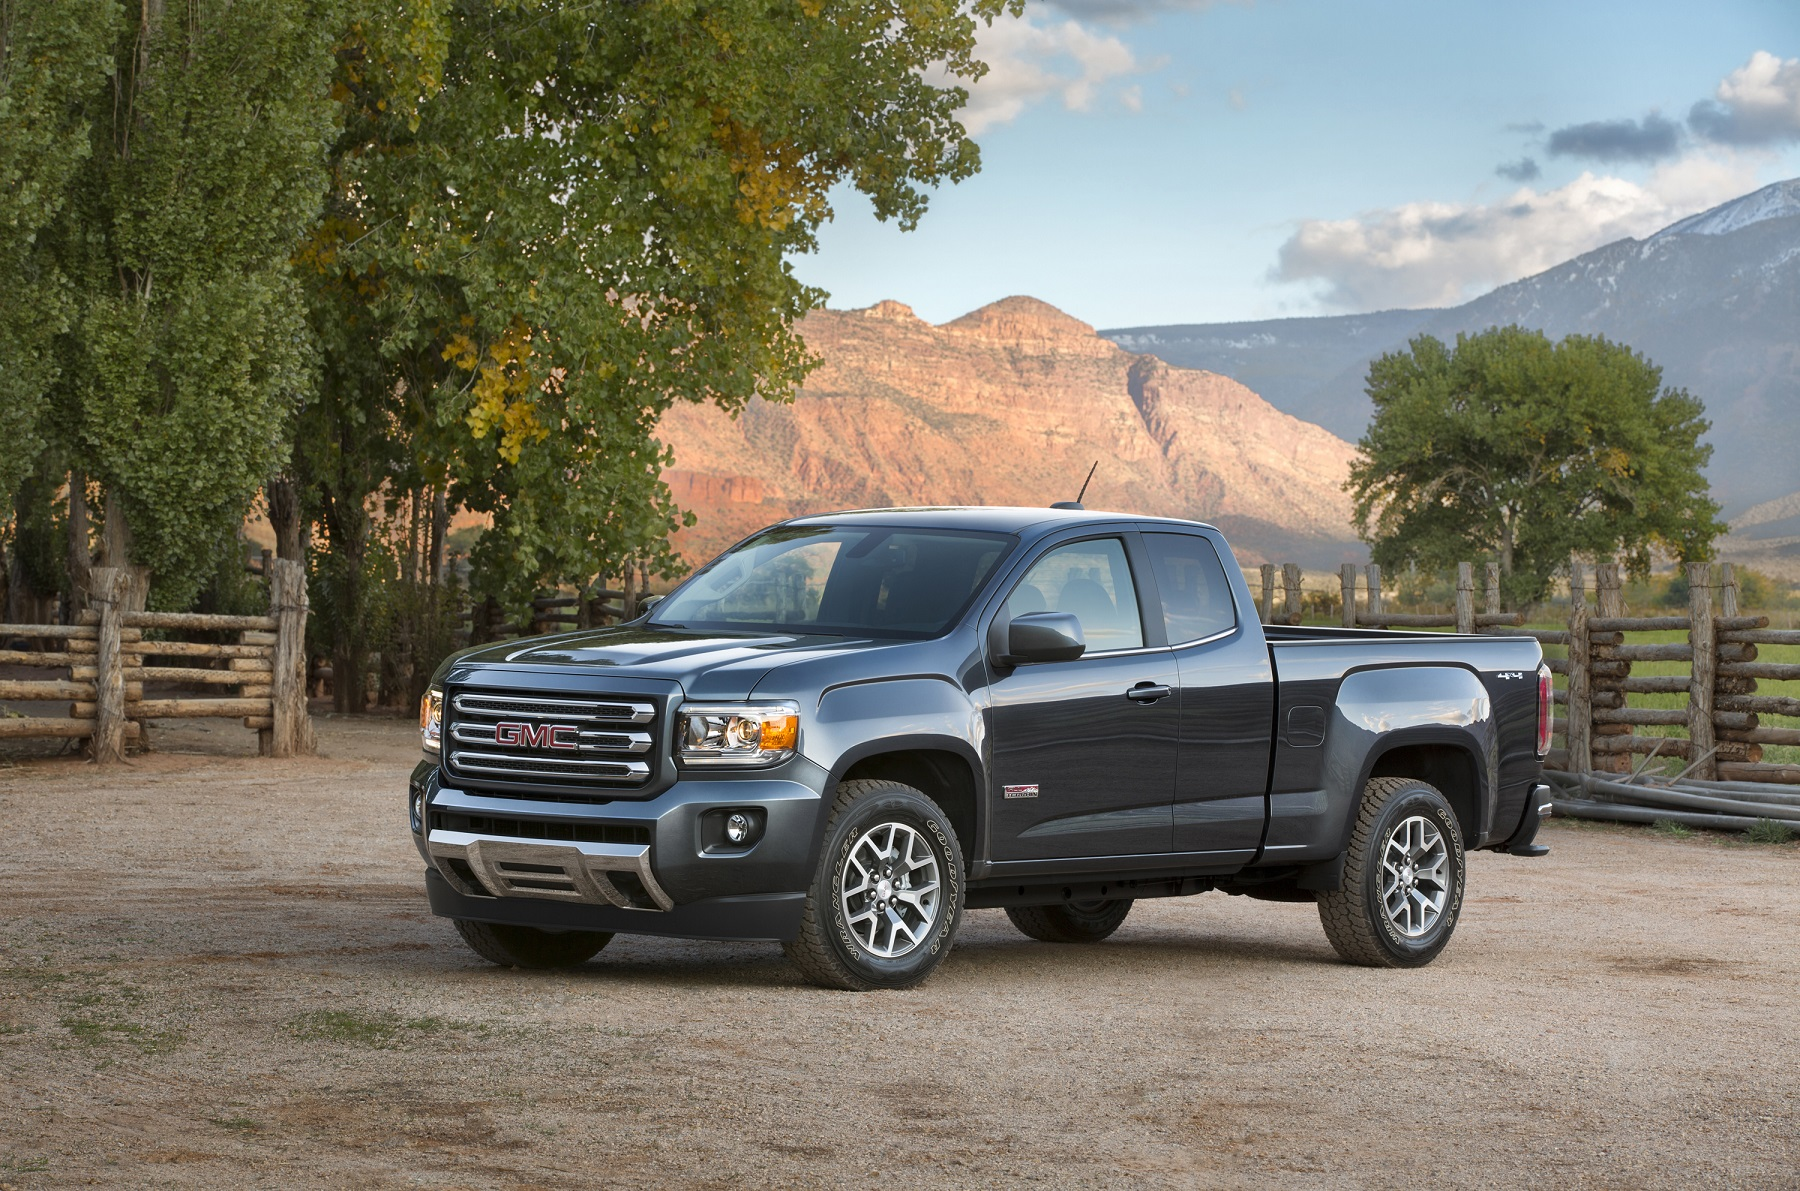 editions leds sierra gmc elevation edition carbon elevationedition top truck flight and bring